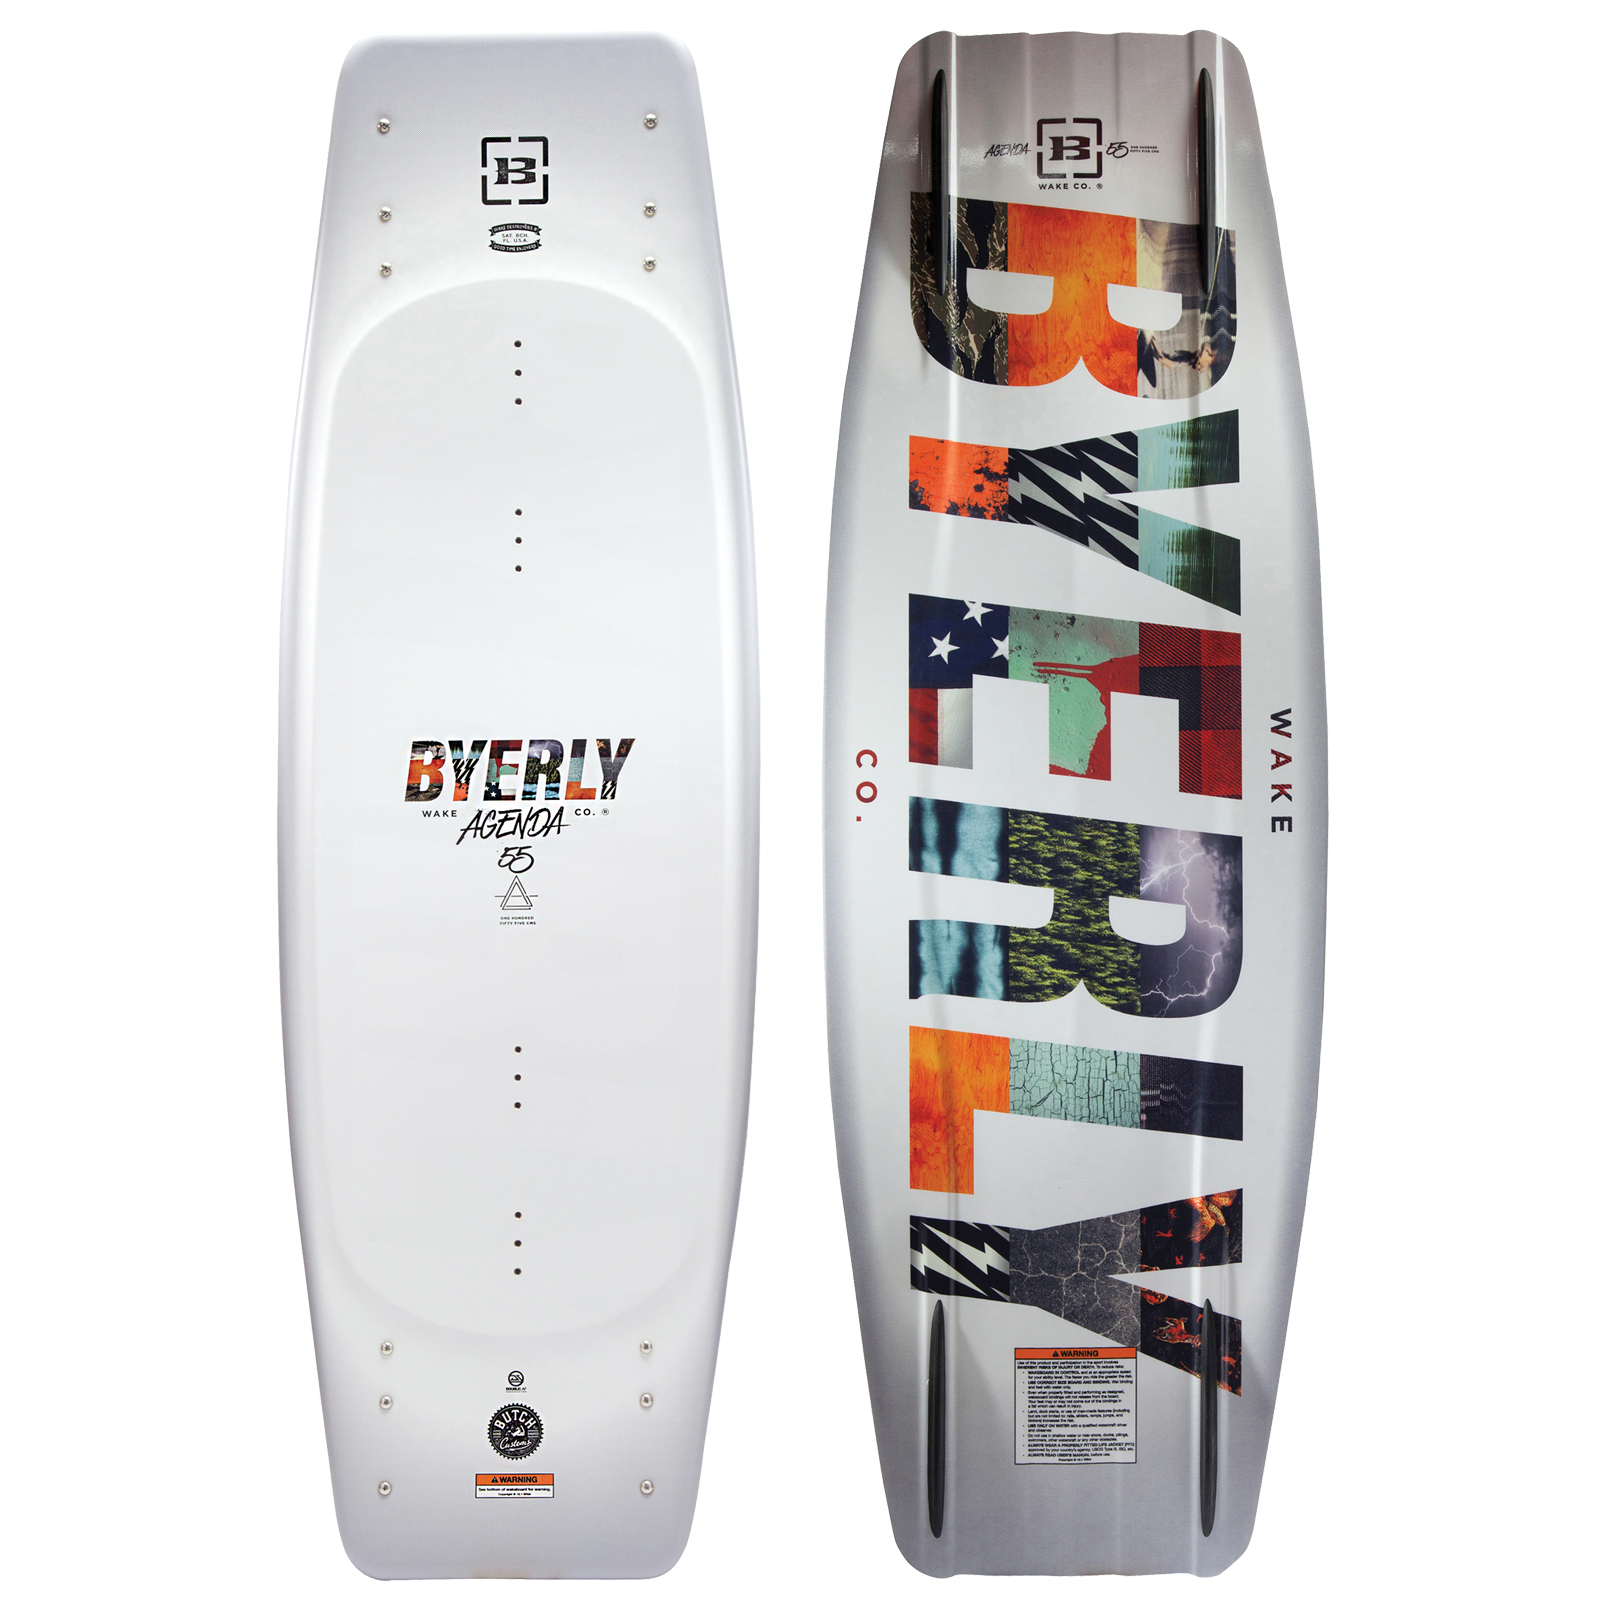 AGENDA WAKEBOARD BYERLY 2017